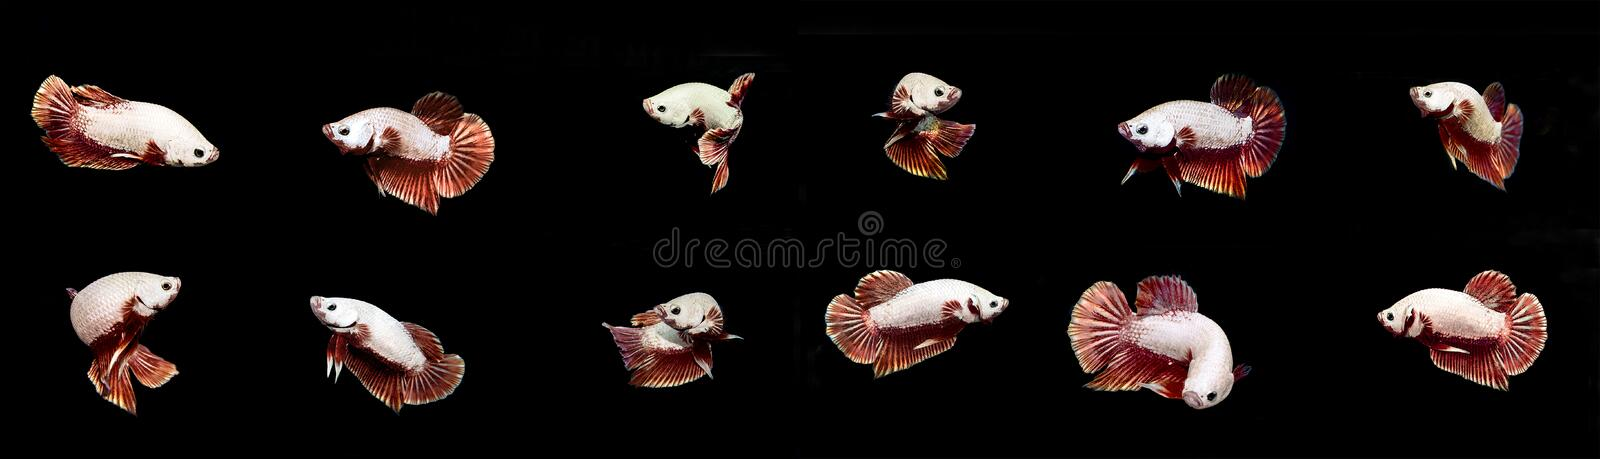 Combined White Betta Fish Siamese fighting fish on black background royalty free stock photography